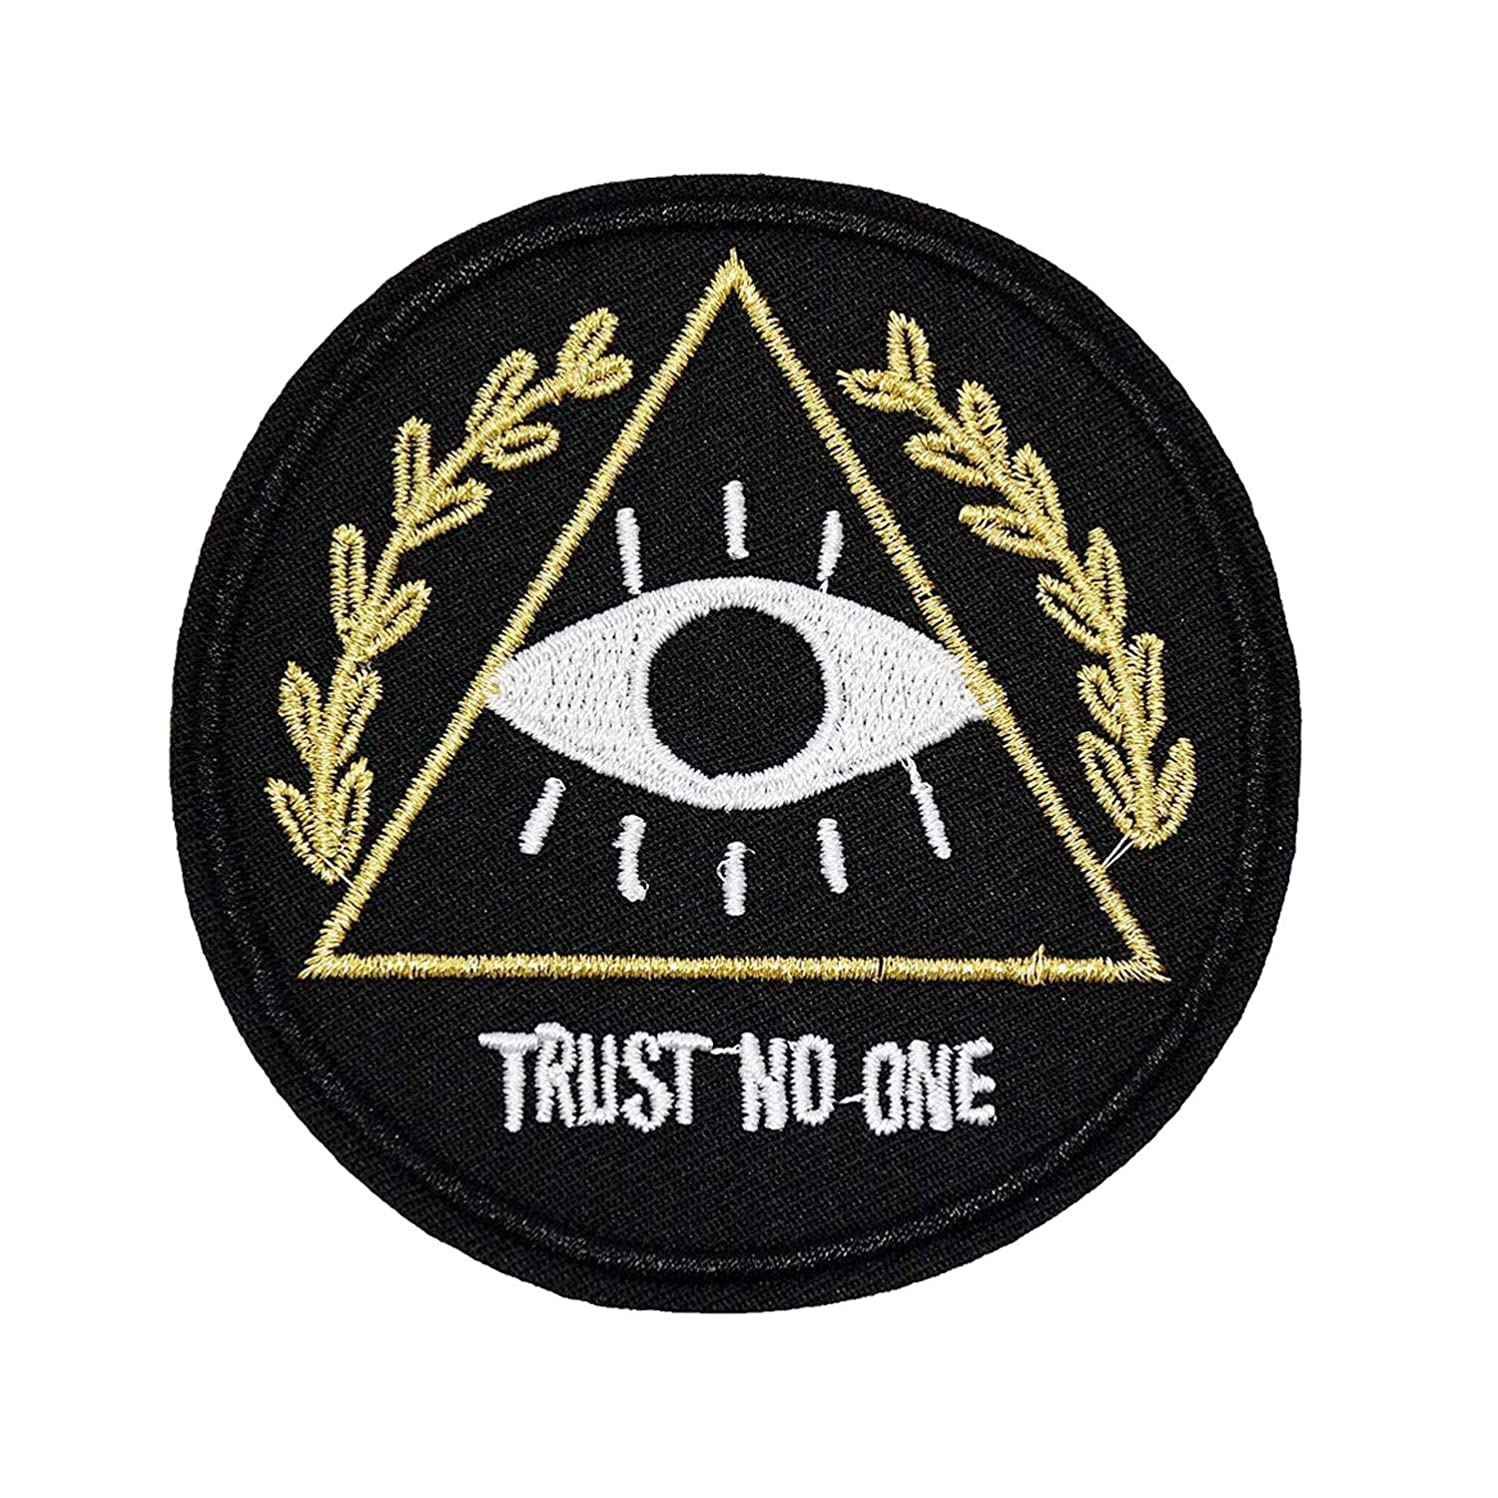 U-Sky Sew or Iron on Patches - Trust No One Patch - Pack of 2 Different Design